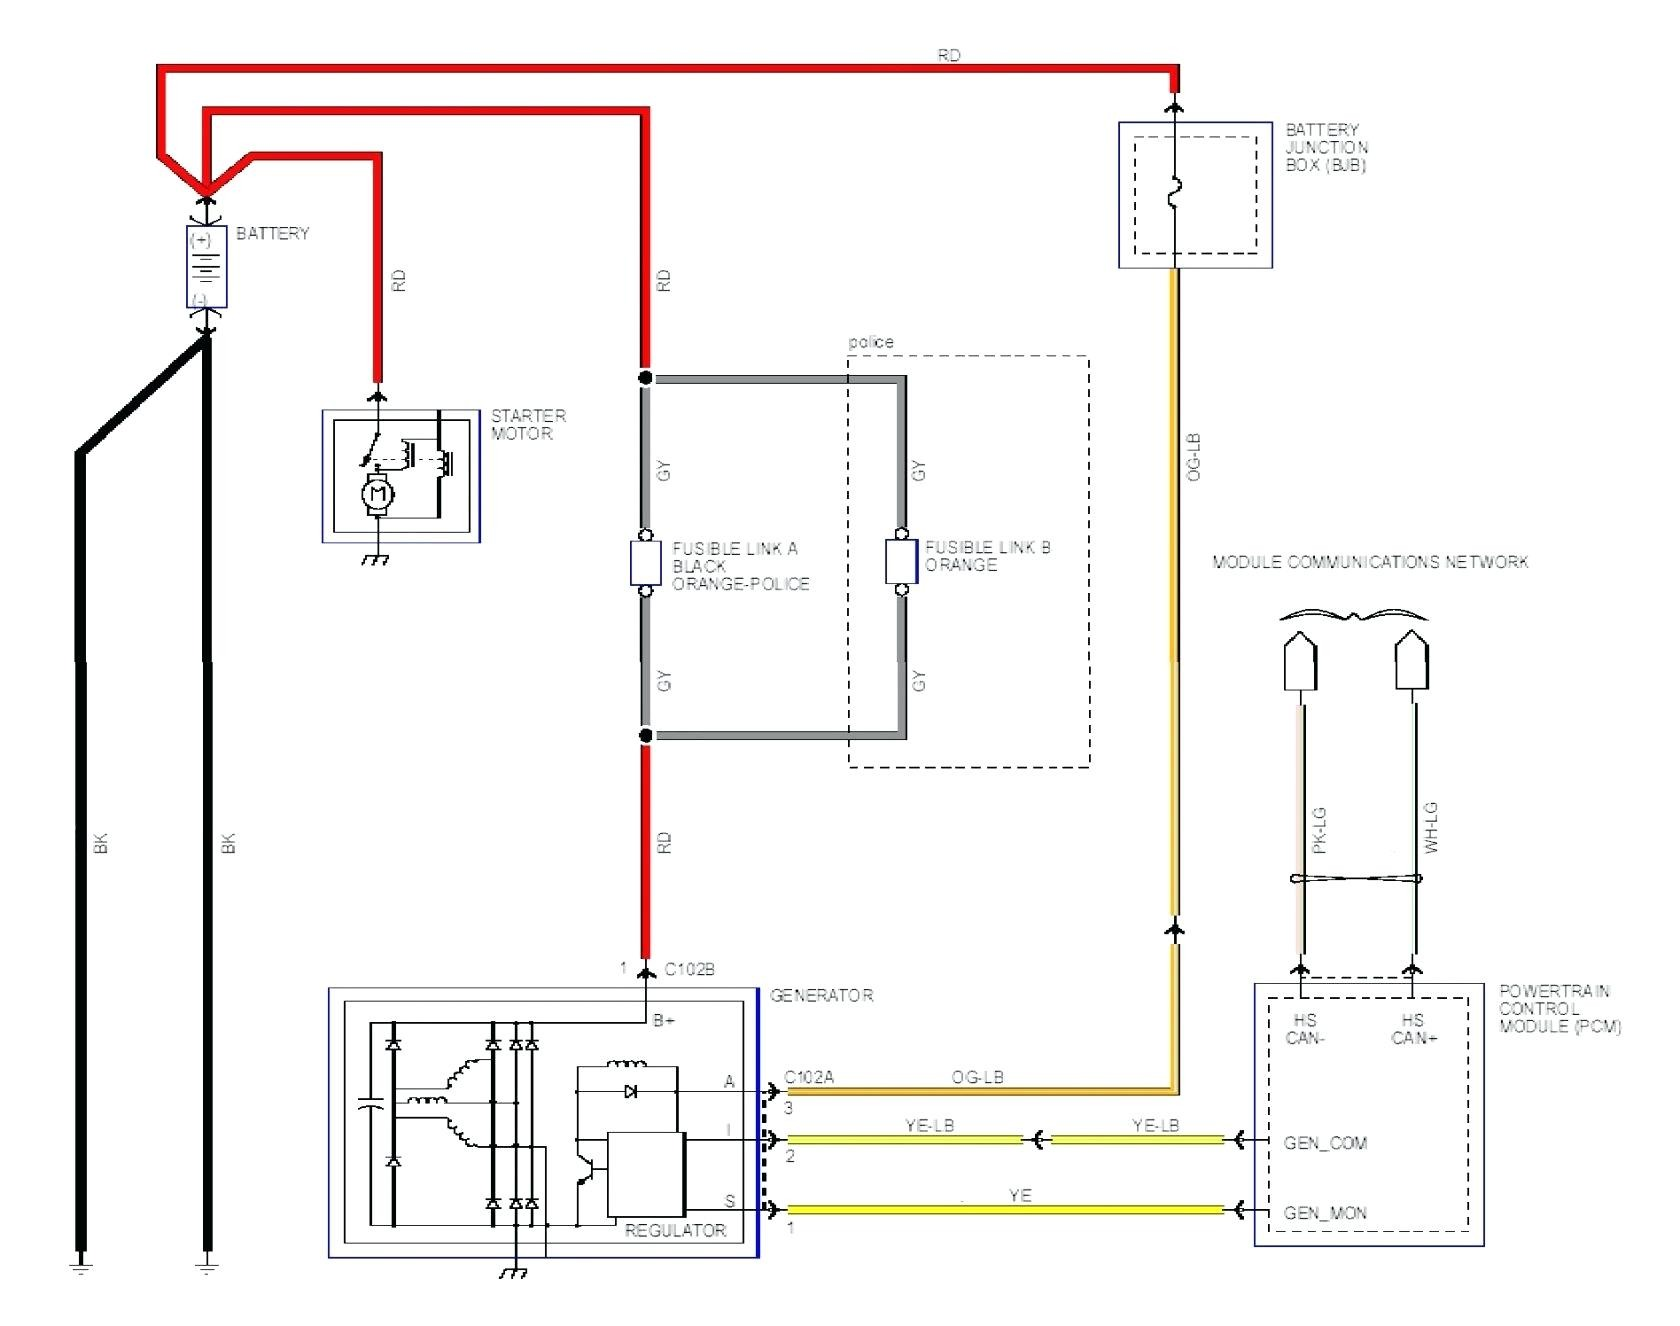 Pleasing Mf 135 Wiring Diagram Wiring Diagram Data Schema Wiring Cloud Grayisramohammedshrineorg